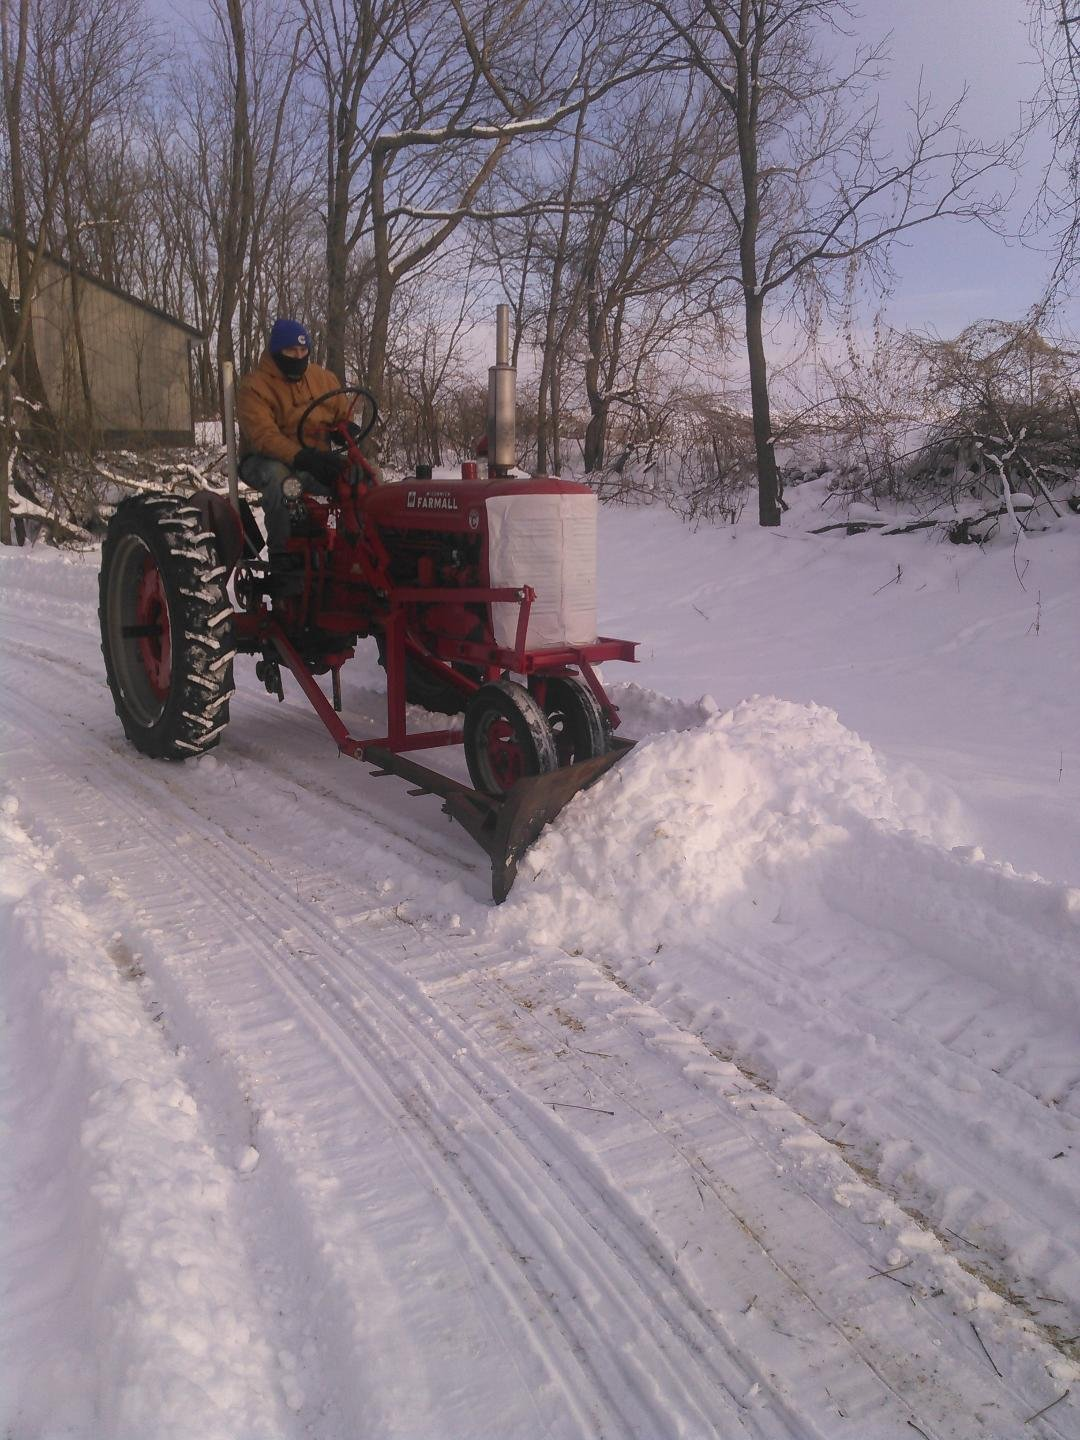 ... acquiring this homemade snowplow. I am pleased with the pushing power, could use a cab though. It was sitting just at 0 degrees and my toes went numb ...